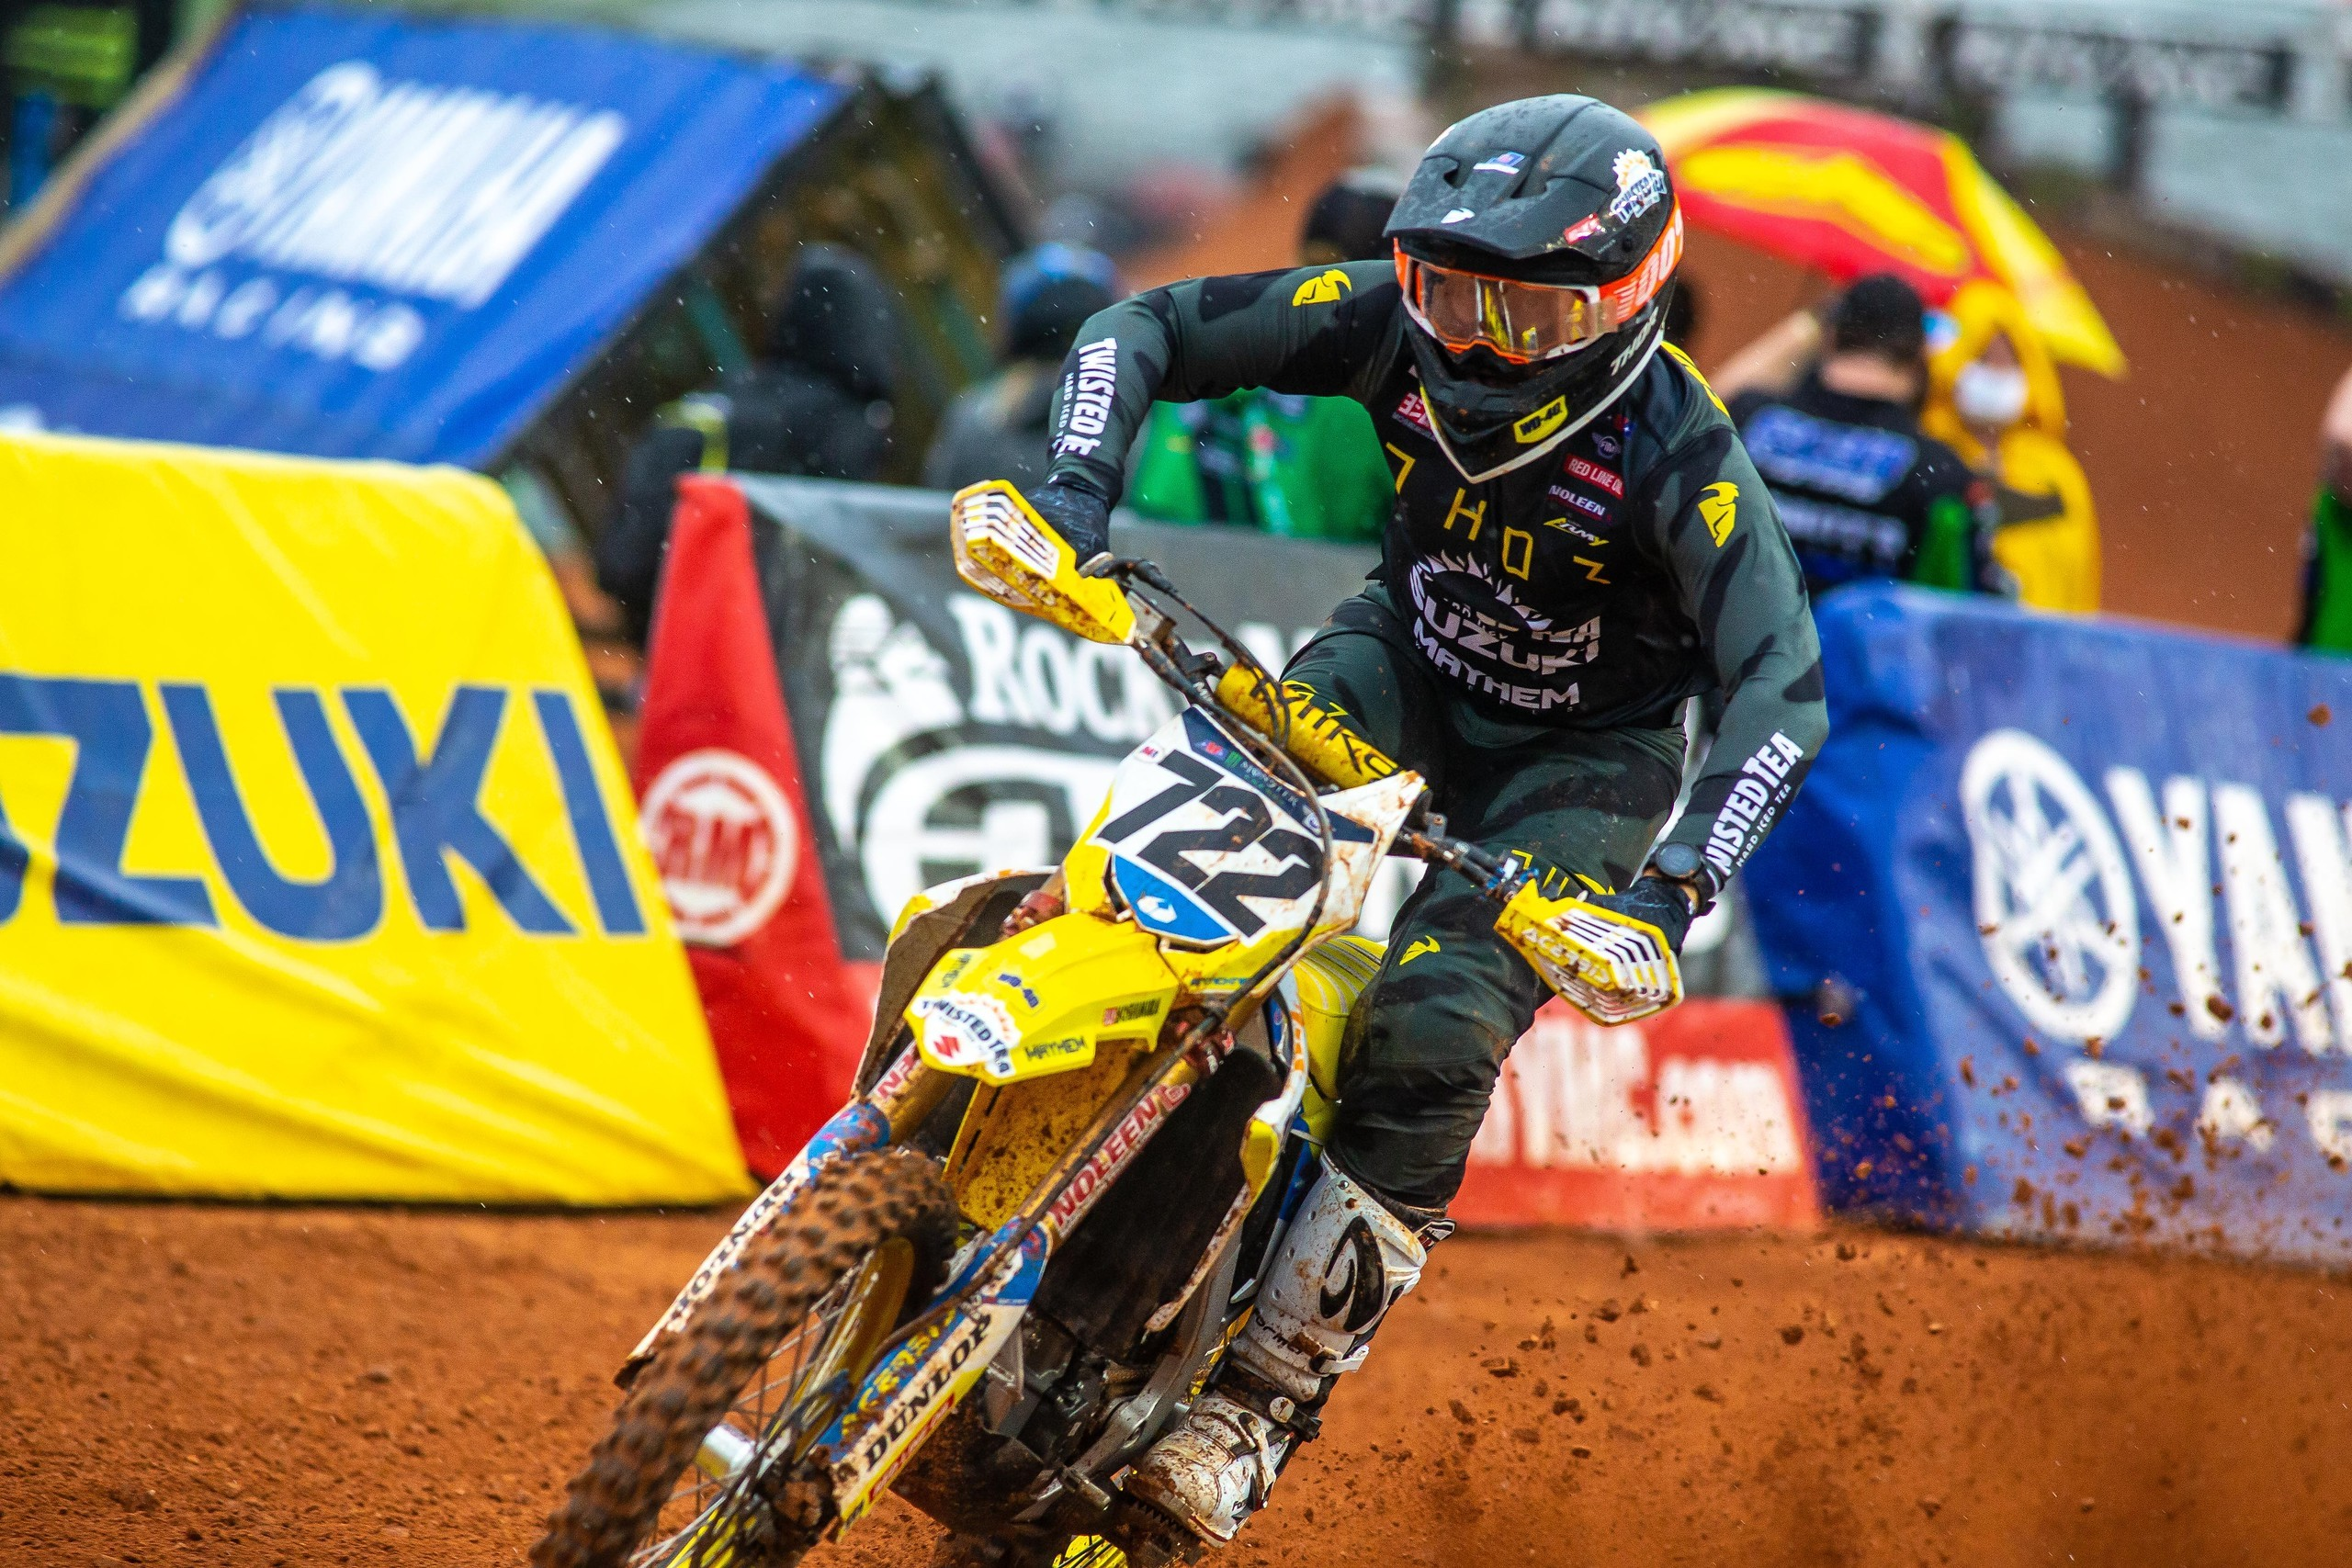 The always popular Adam Enticknap (722) was back and raced hard on his RM-Z450